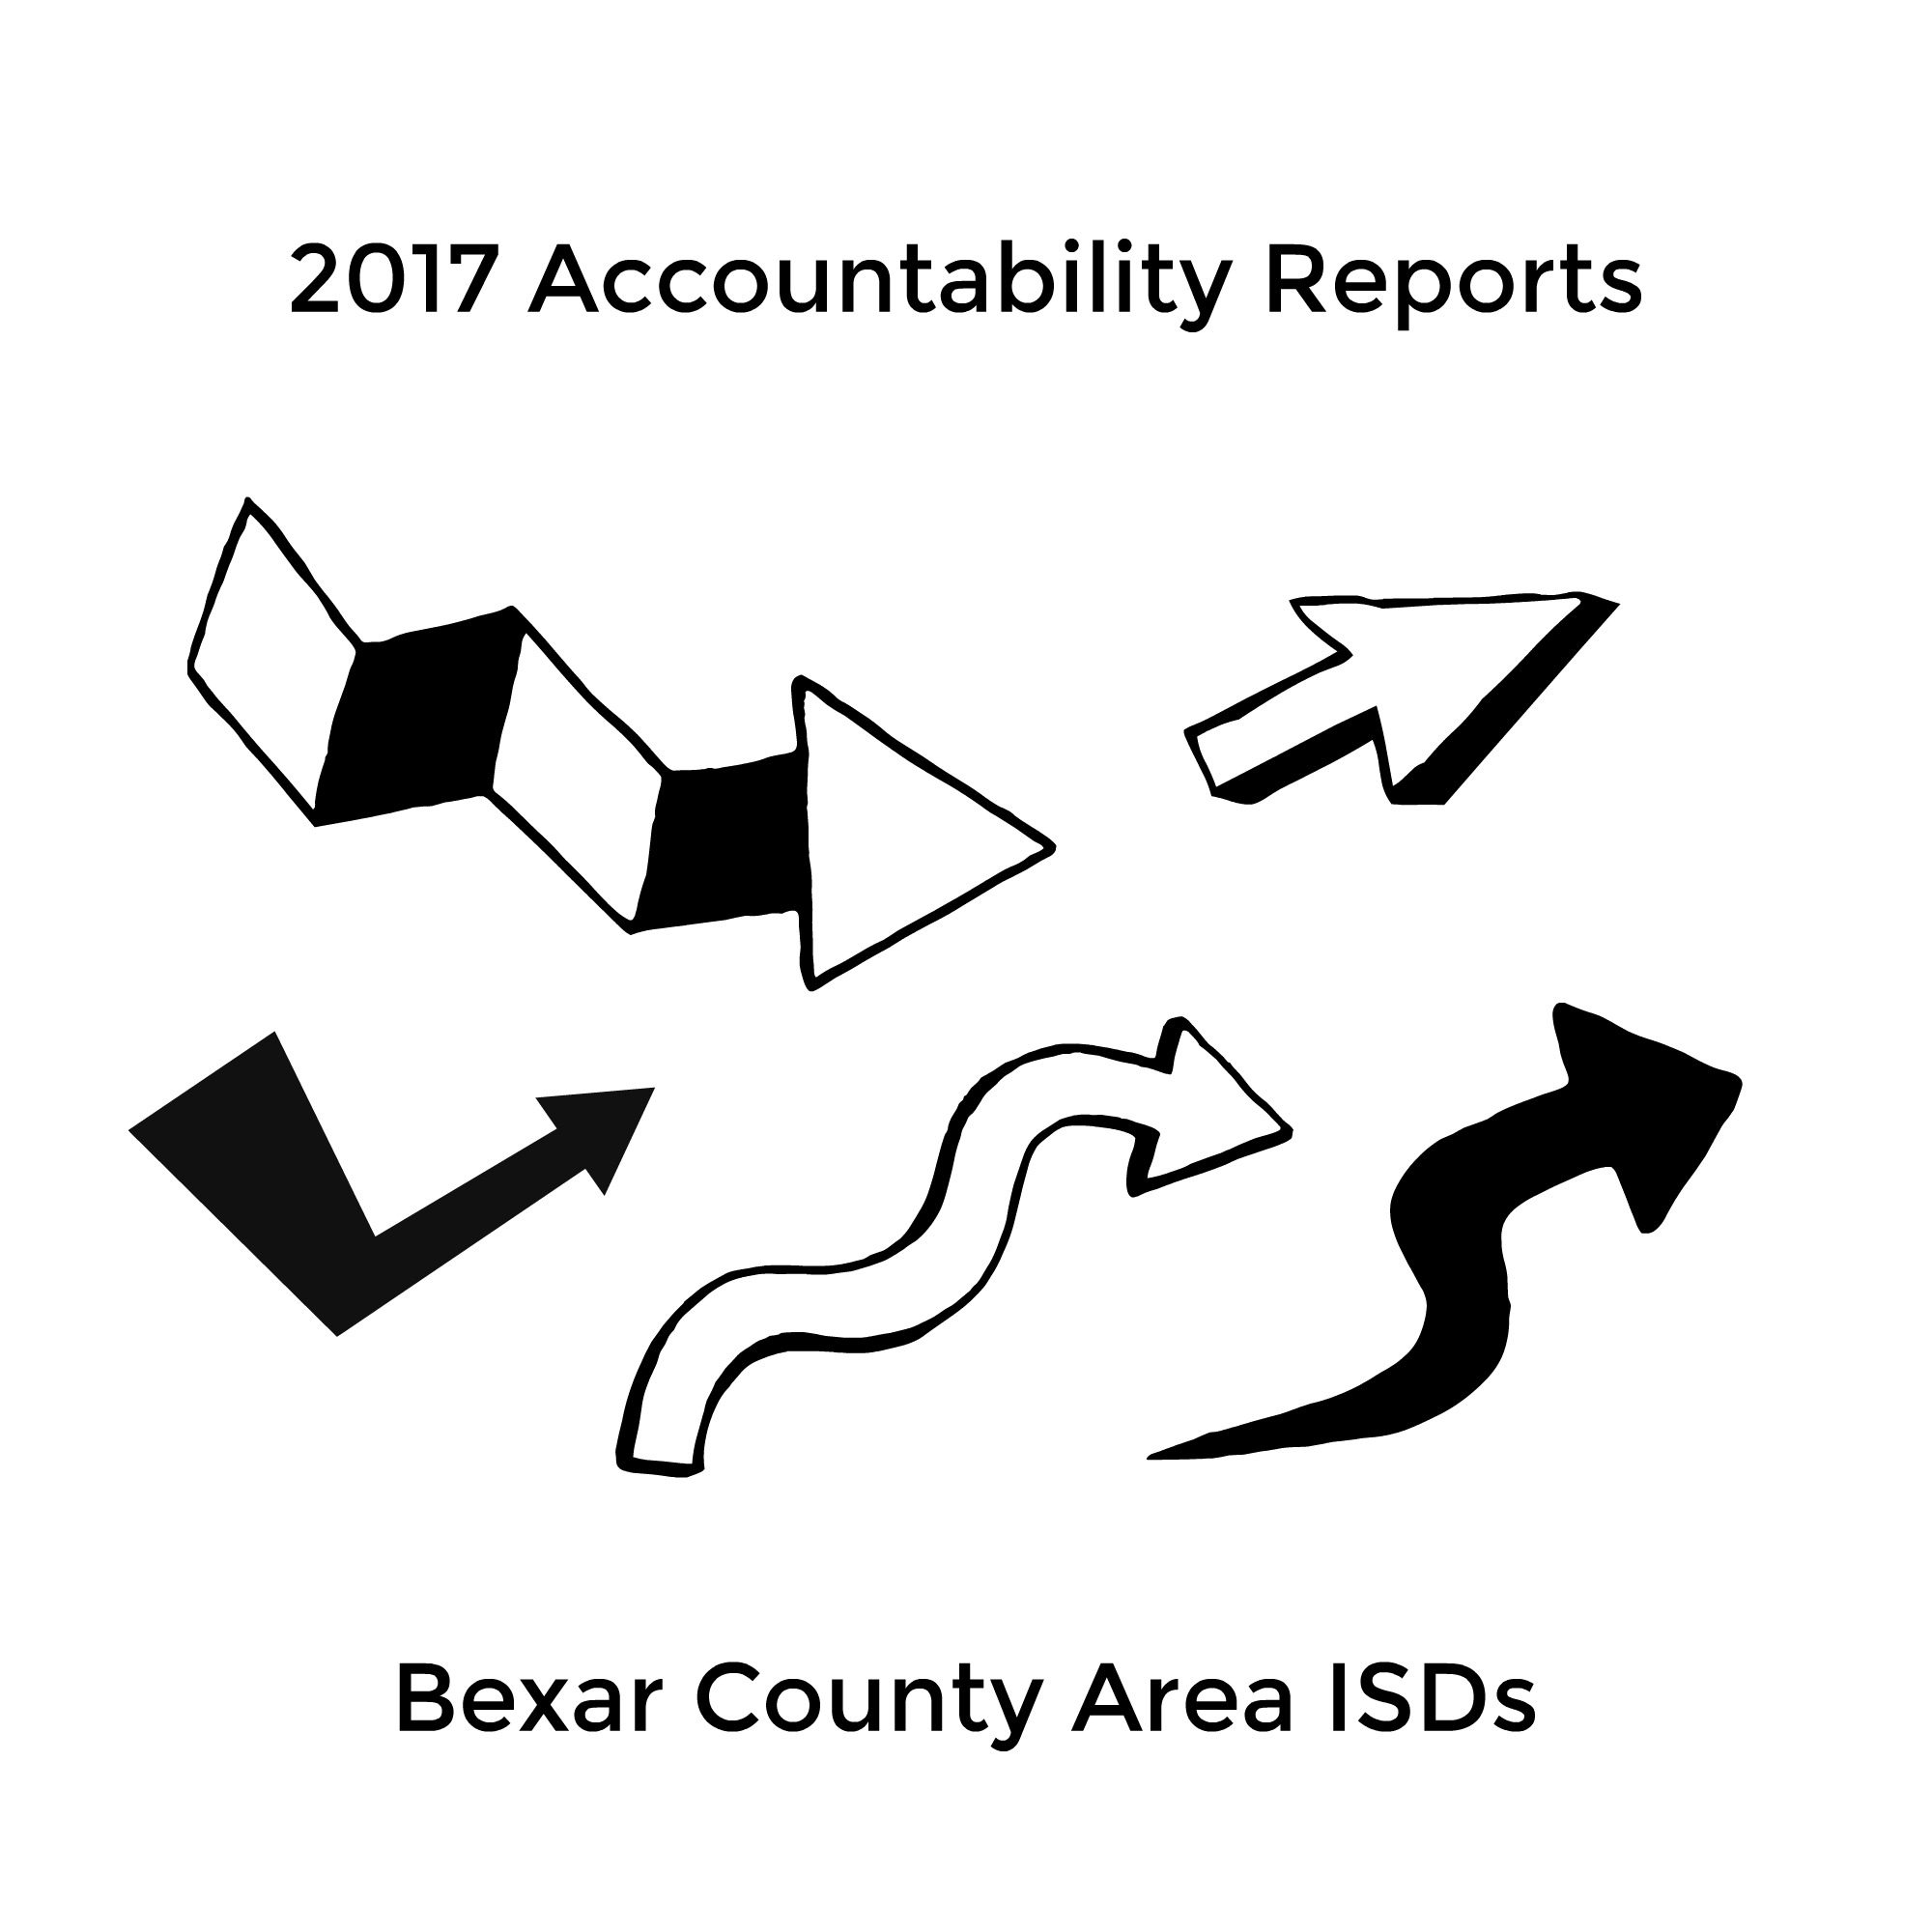 Texas Education Agency Accountability Reports For Bexar